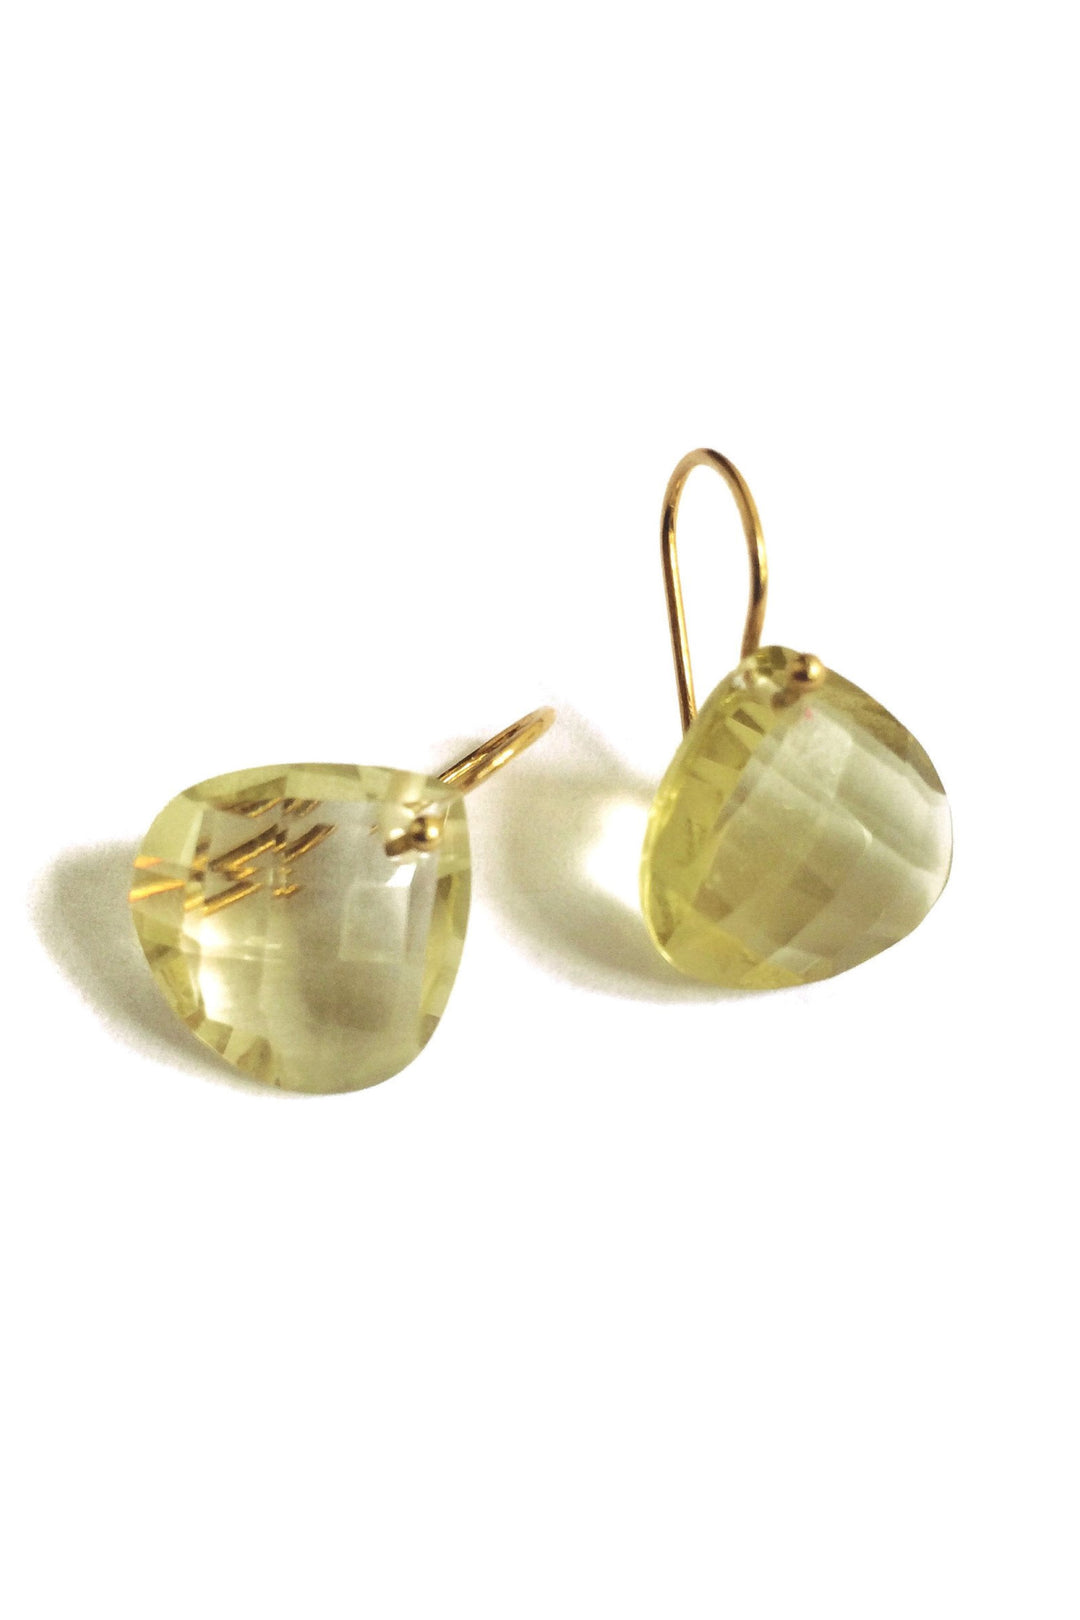 Lemon teardrop quartz earrings